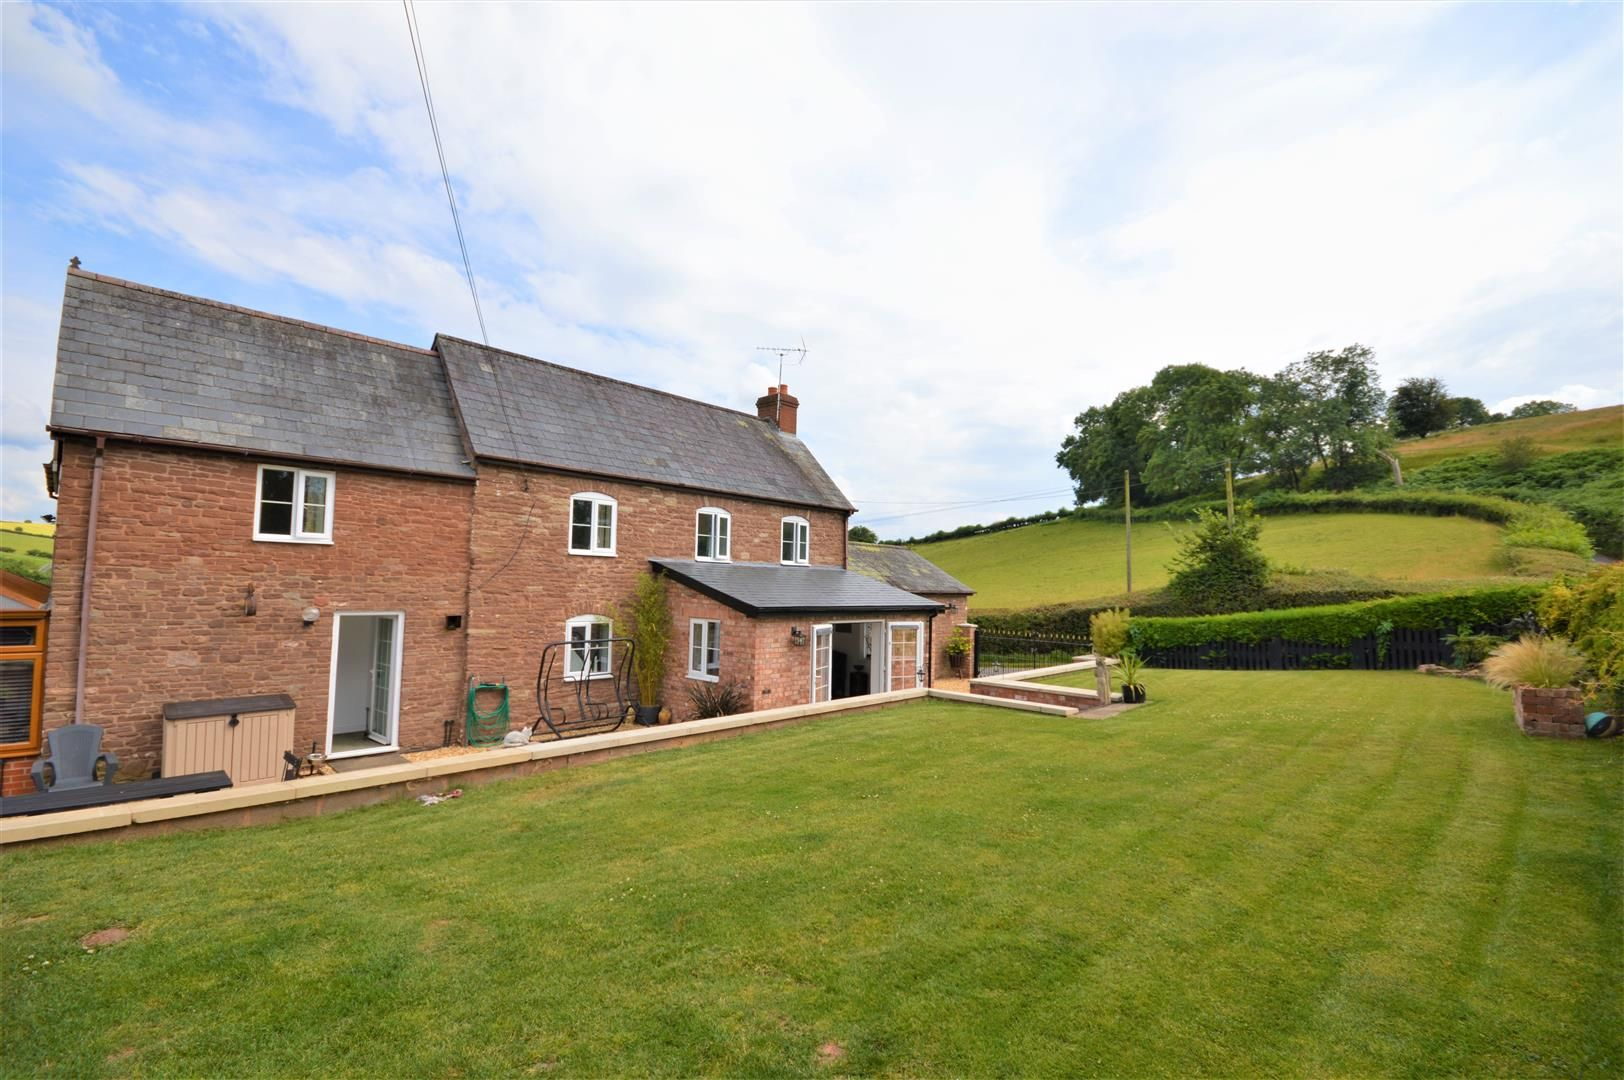 3 bed detached for sale in Orcop 4